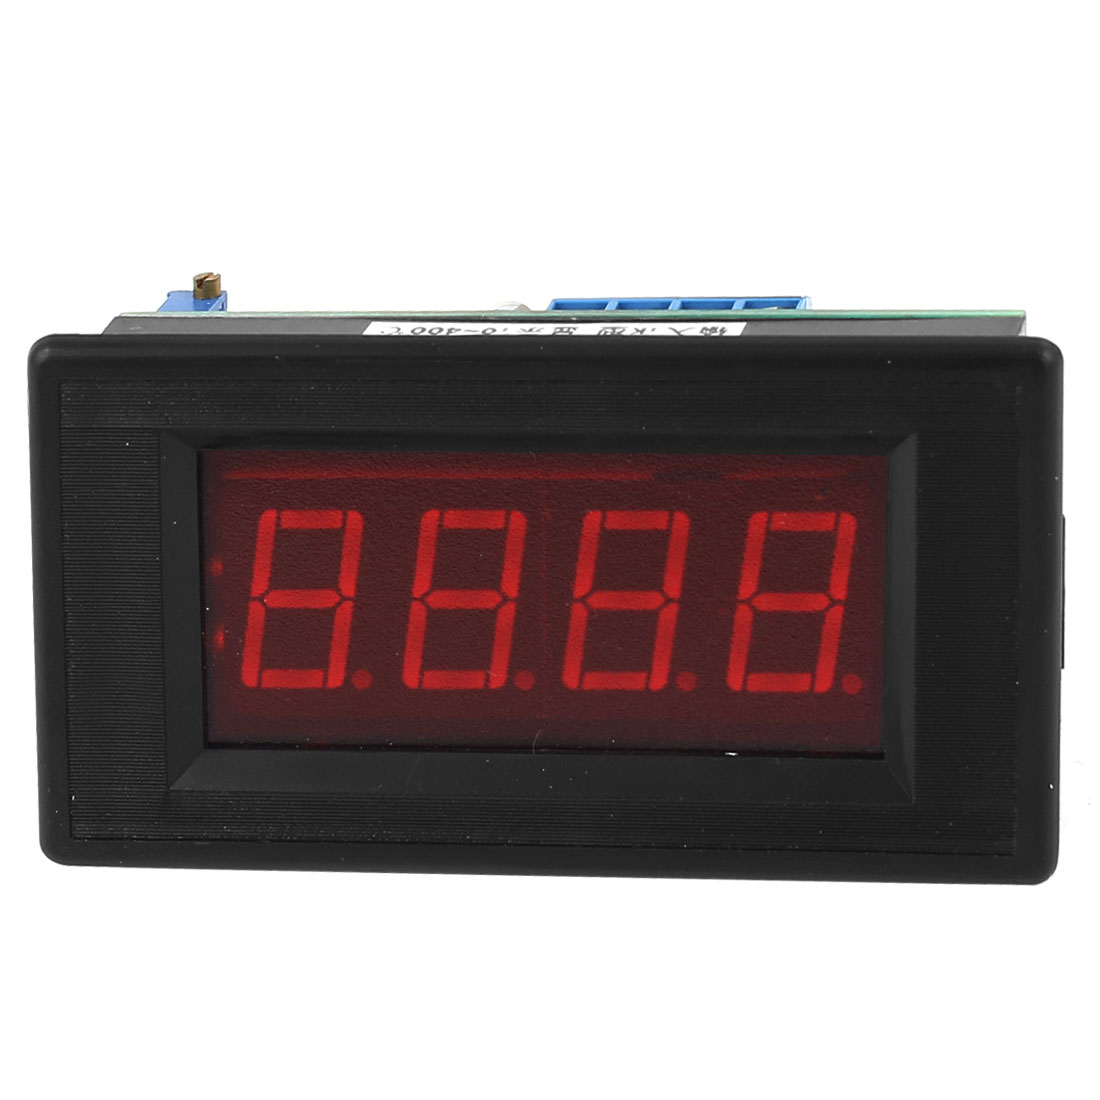 DC 5V Red LED Display 0-400 Degree Celsius K Type Thermometer Panel Temperature Meter